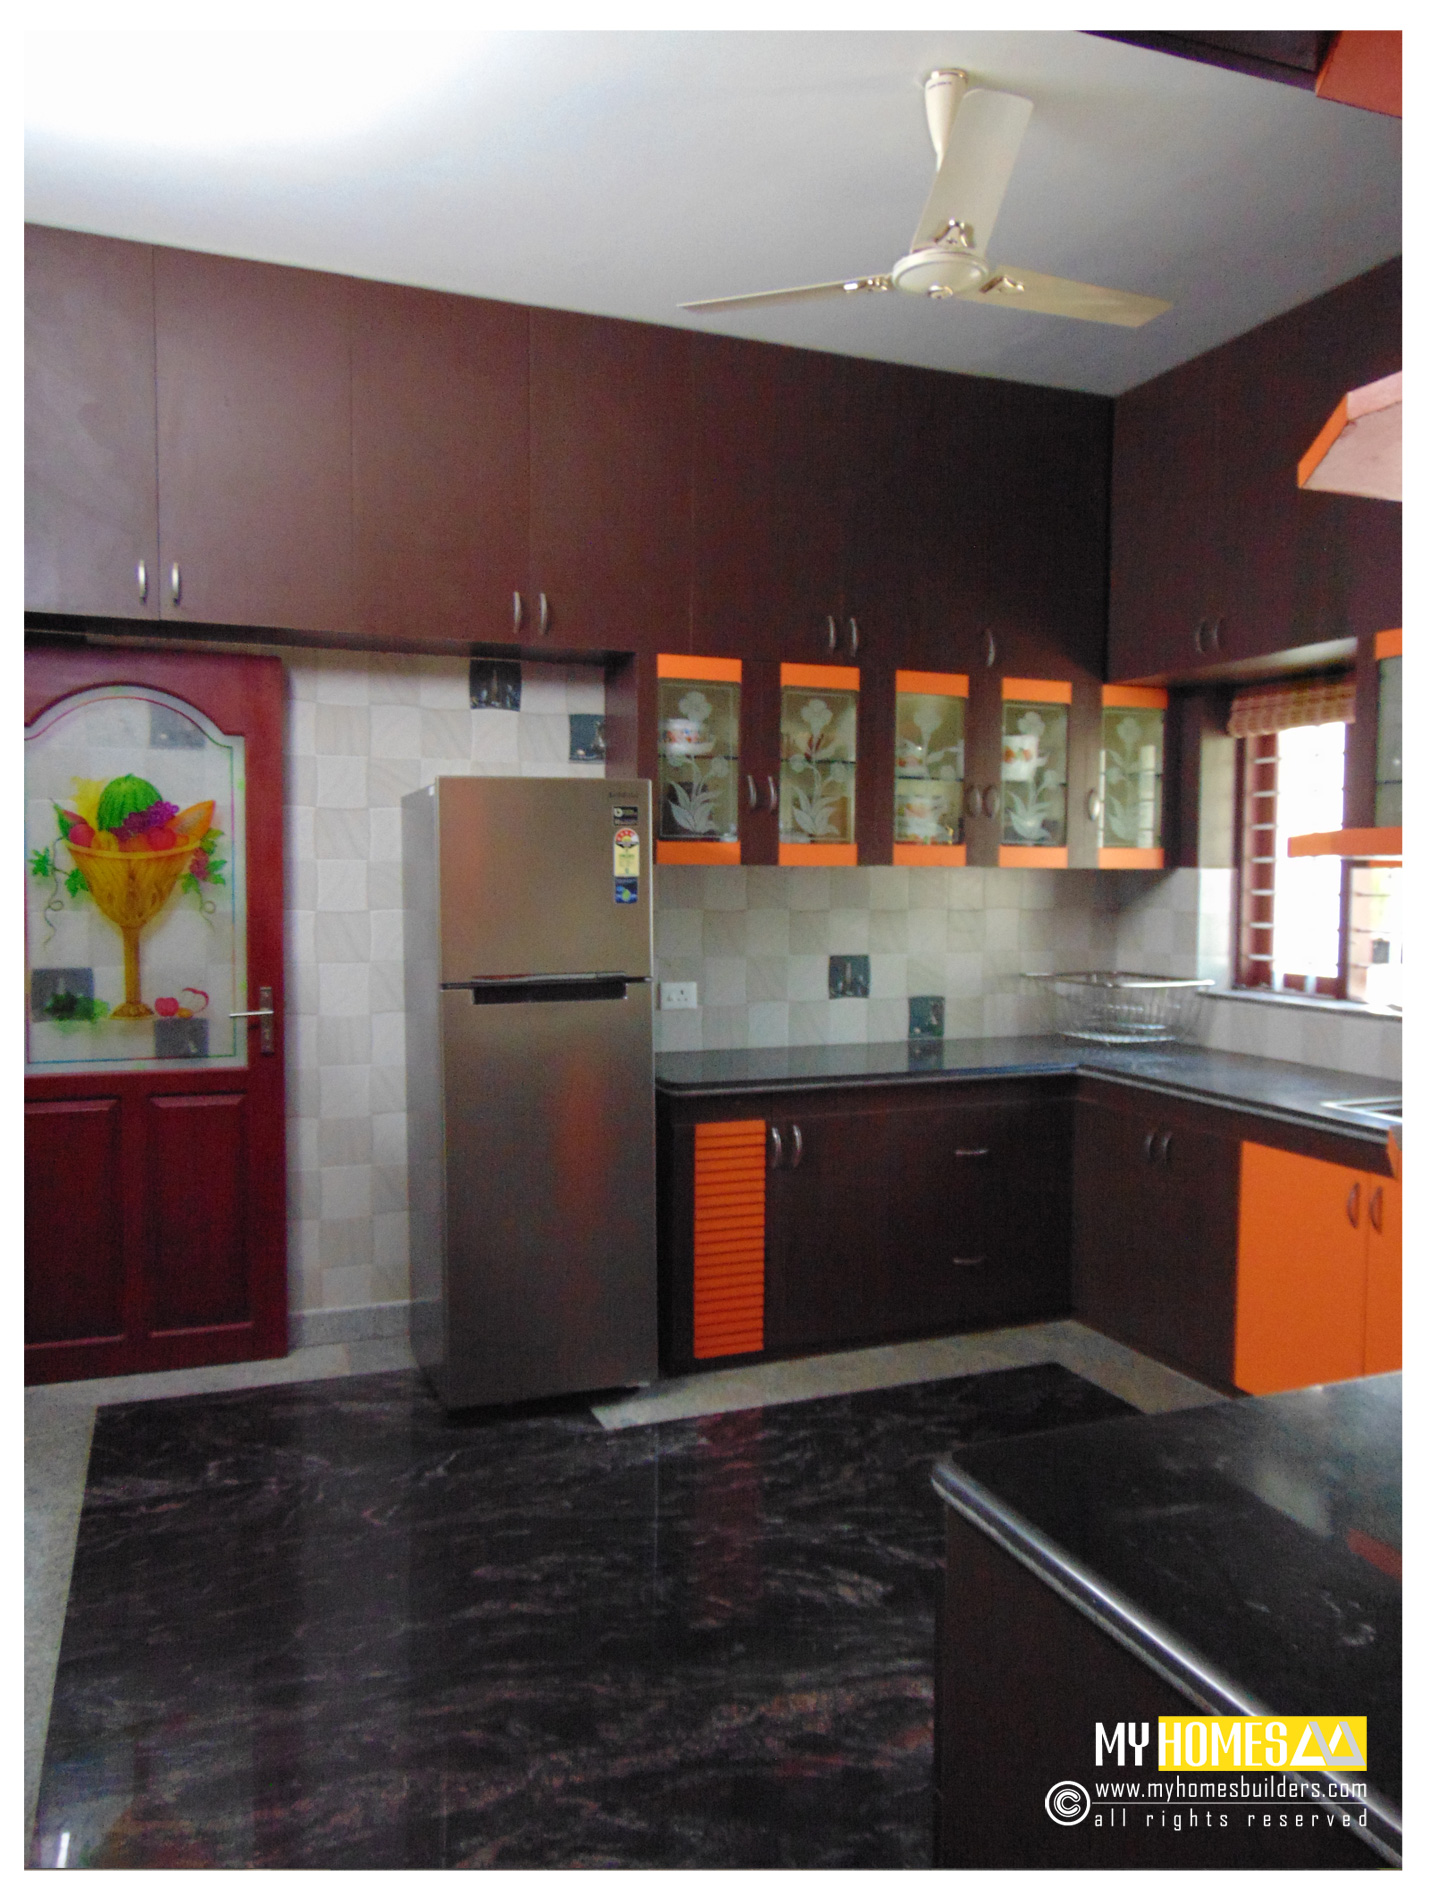 Kerala kitchen designs idea in modular style for house in for Kitchen designs photos